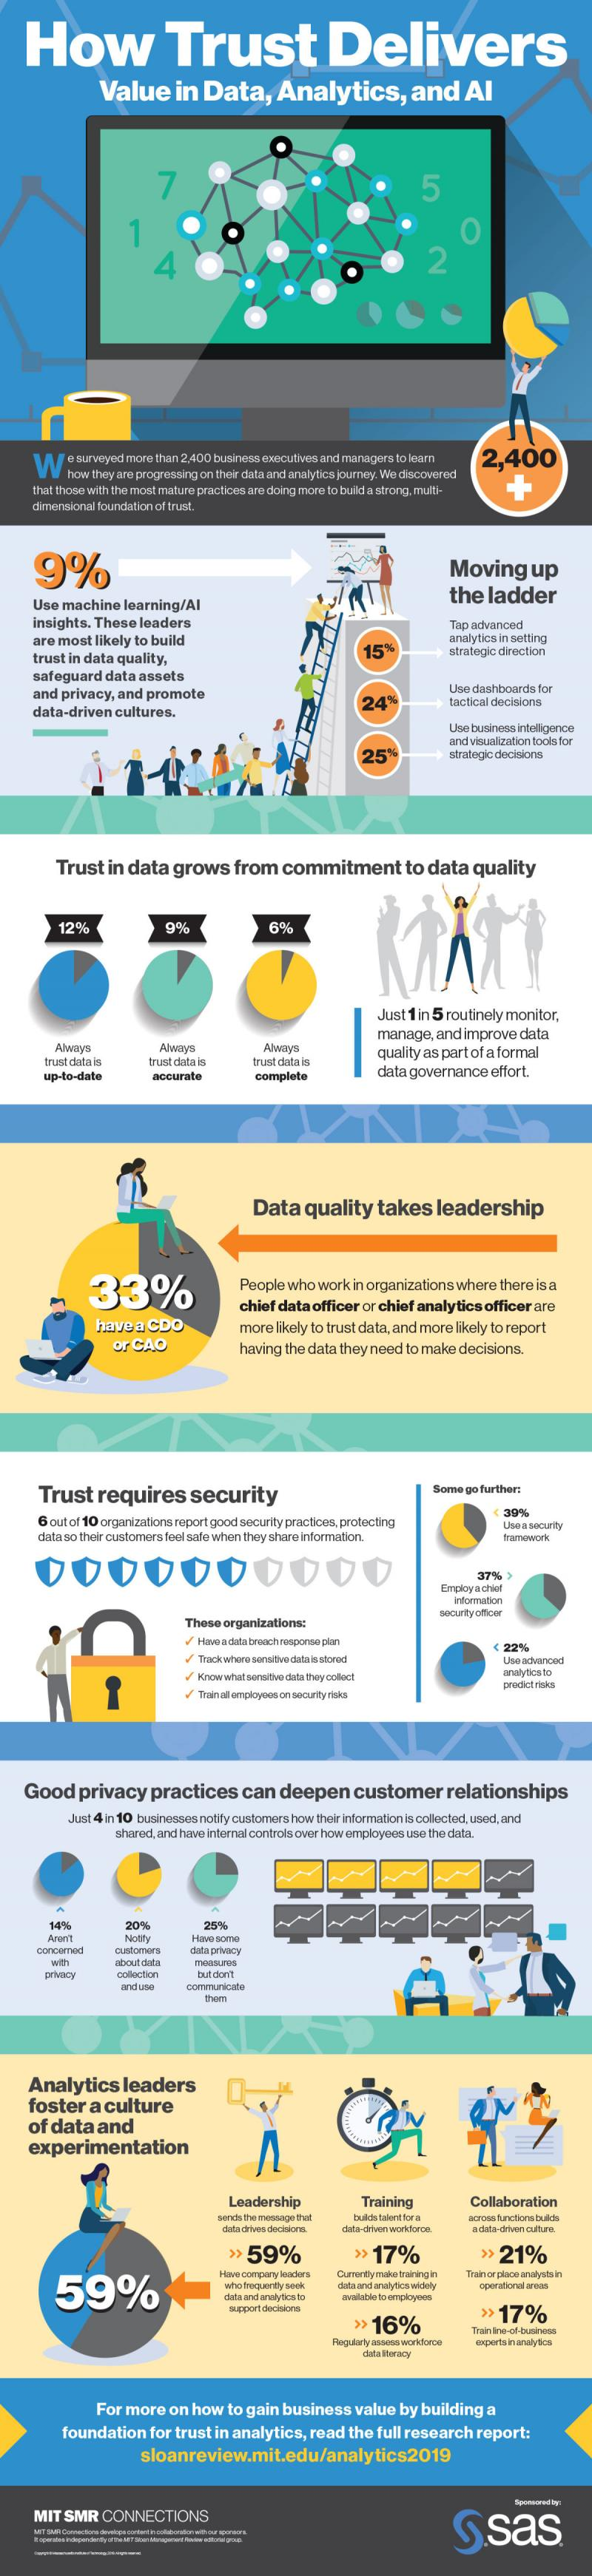 How Trust Delivers Value in Data Analytics and AI #Infographic